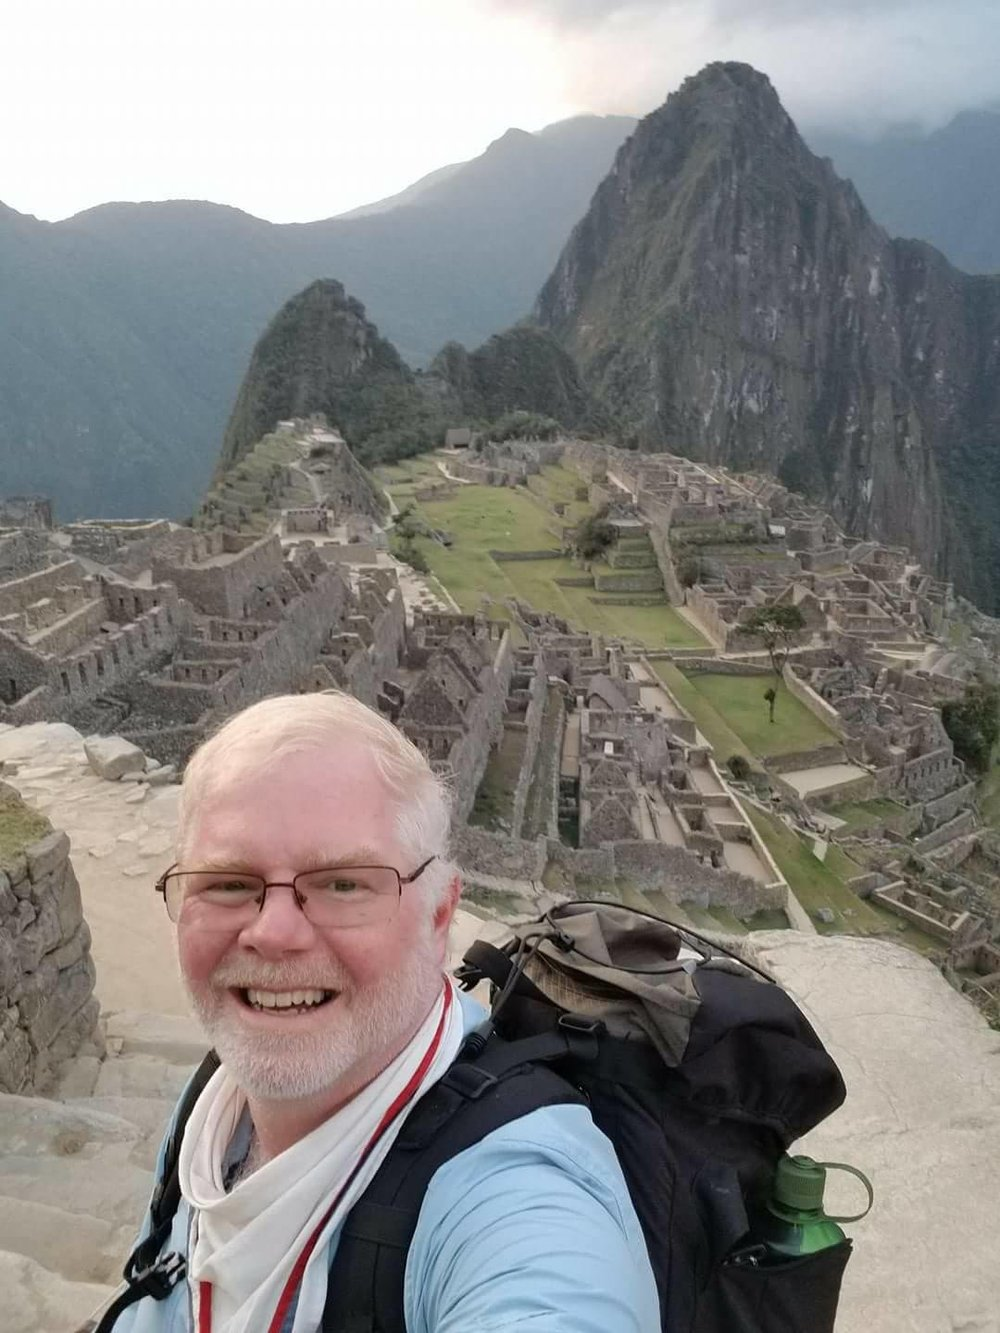 Stuart Brady, traveler in Peru.